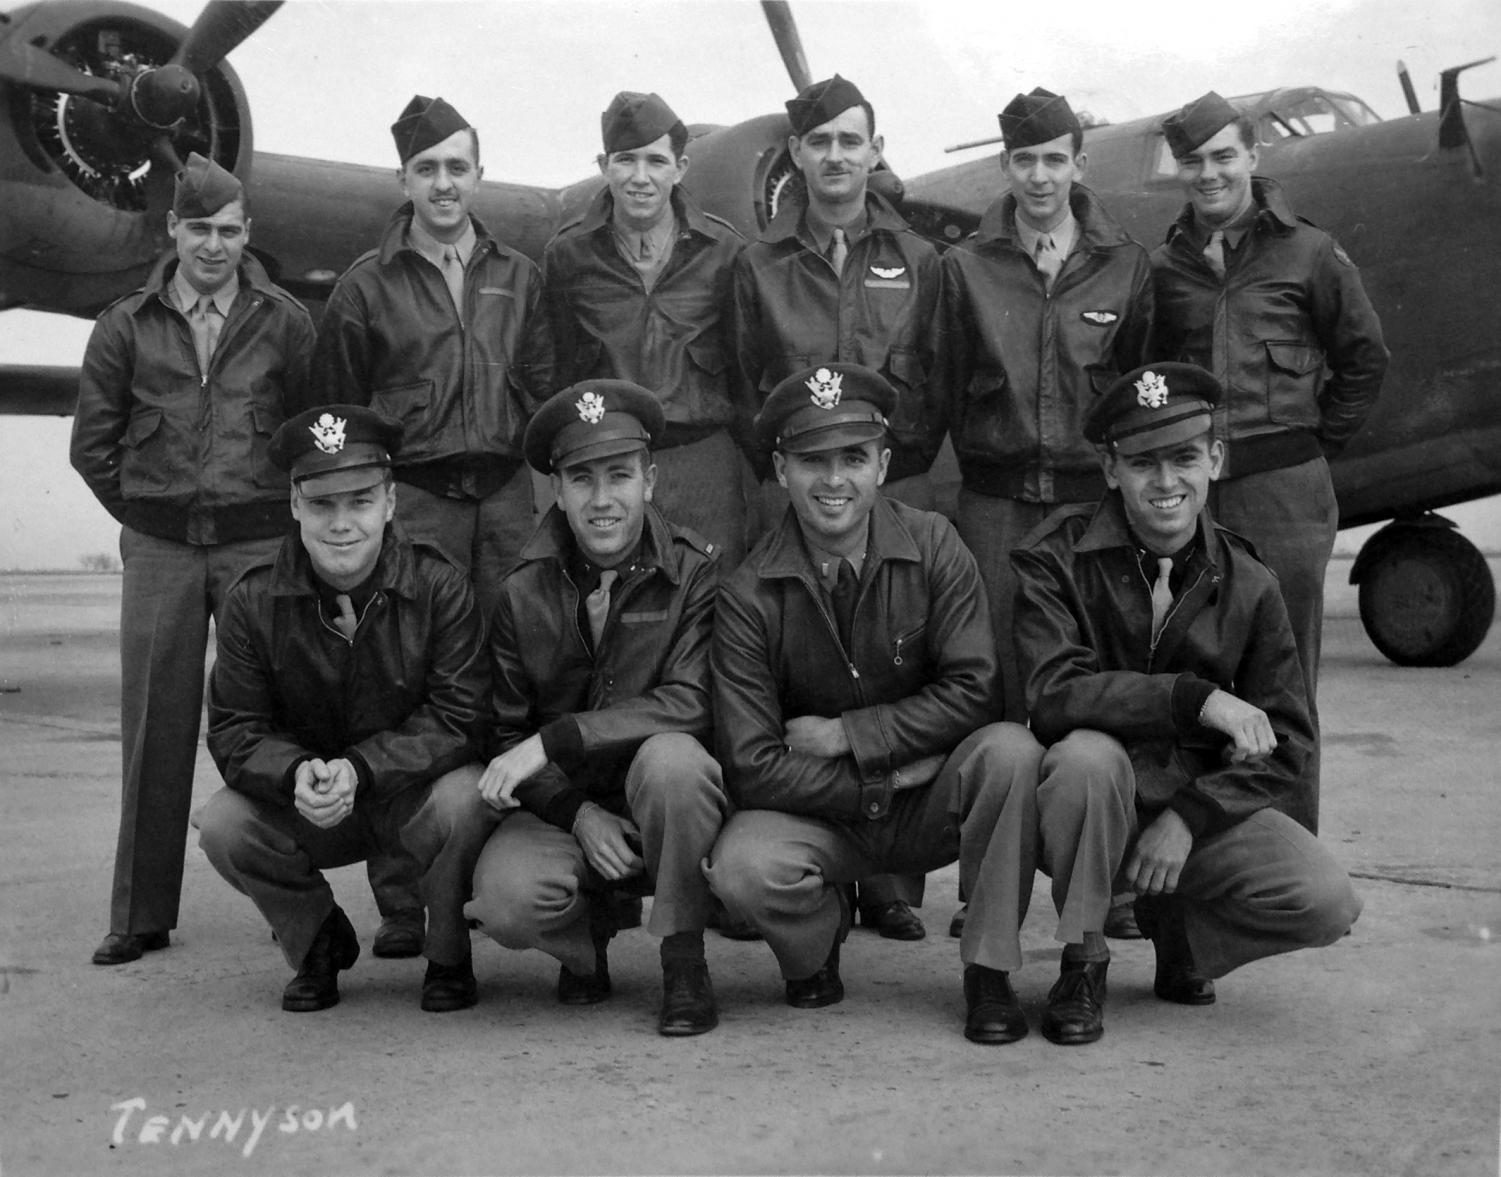 """This B-24 bomber crew, plus an additional crewman, were lost on a bombing mission over Papua New Guinea in 1944 during World War II. The bombardier, 2nd Lt. Thomas Kelly, Jr. (front row, far right) was a relative of University professor Scott Althaus. Five years ago, Althaus and members of his extended family formed a research team to learn the details of Kelly's final mission, which would also lead to the finding of the plane, """"Heaven Can Wait."""""""